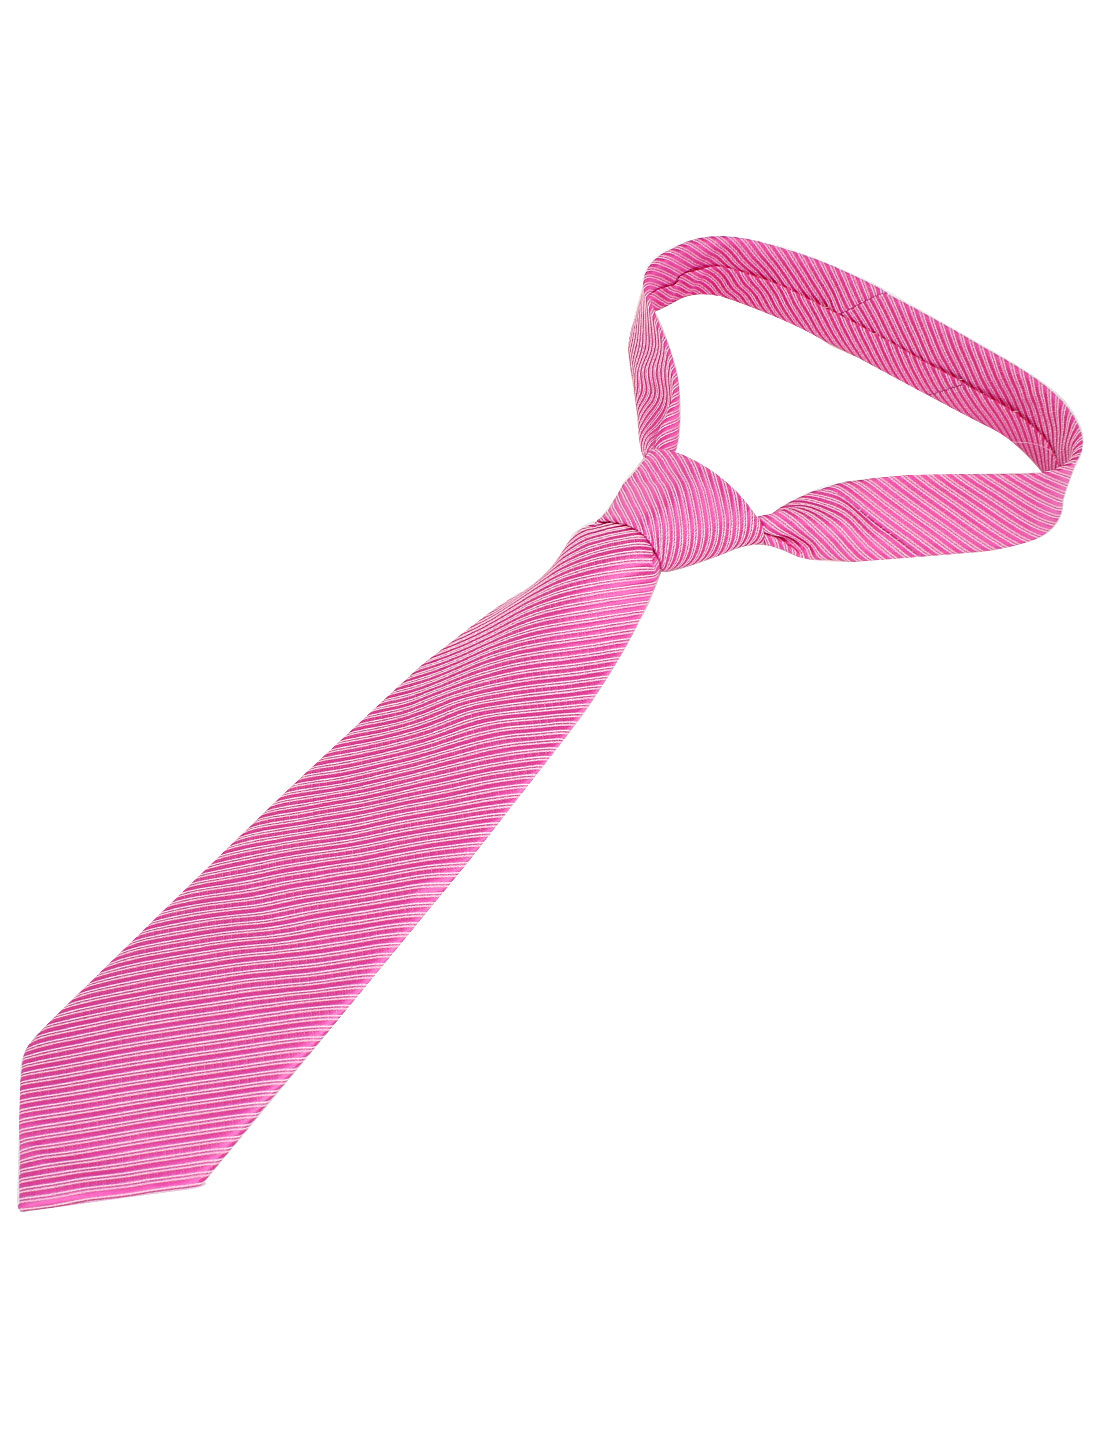 Men Twill Stripes Pattern Polyester Self Tie Adjustable Neckwear Necktie Pink